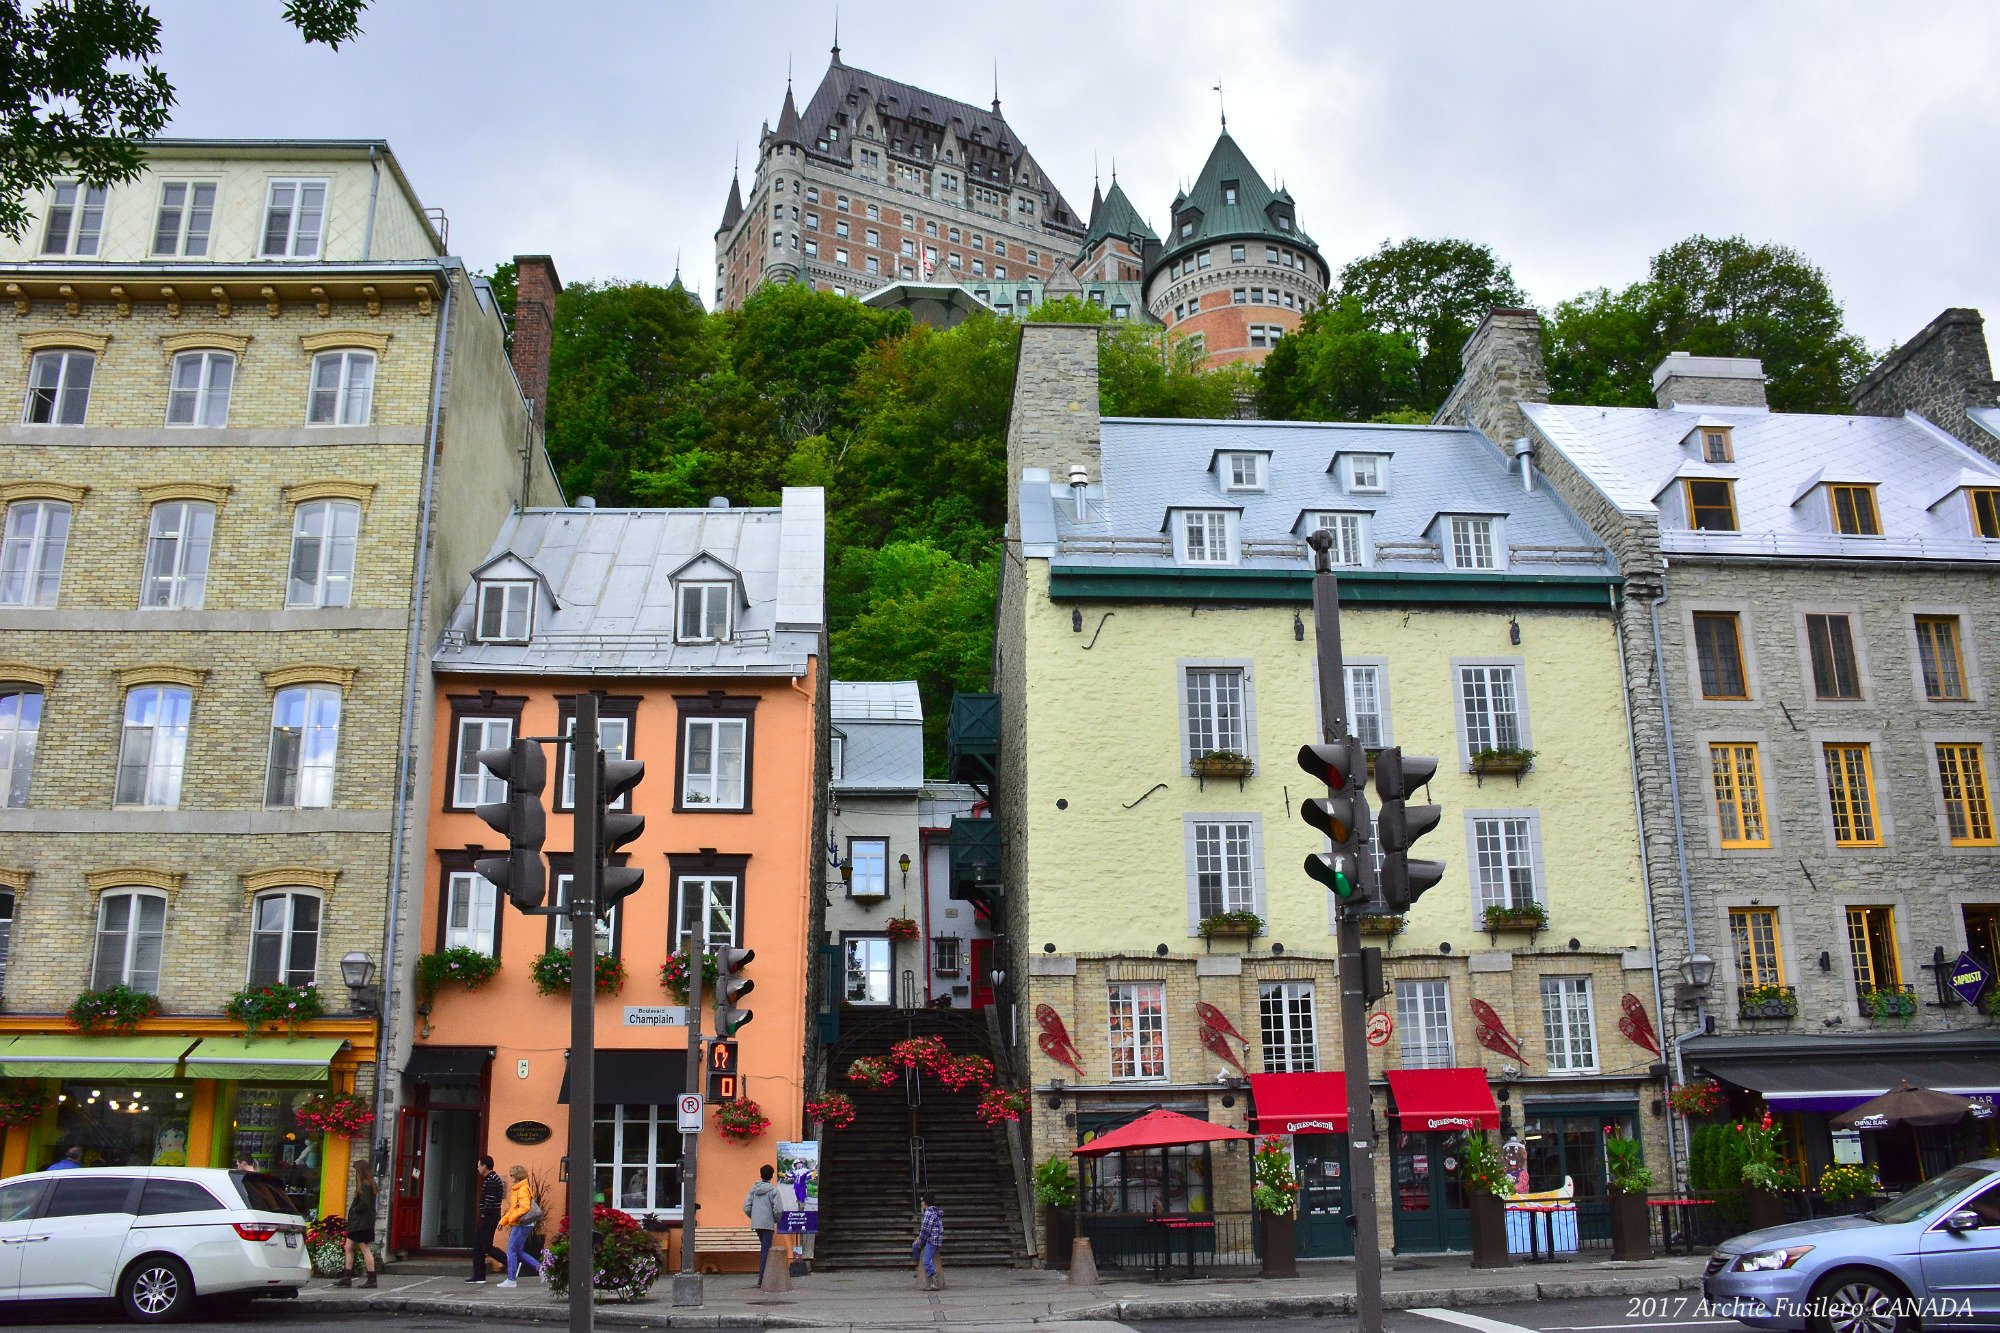 Along Boulevard Champlain, with the Fairmont Le Château Frontenac Hotel in the background.